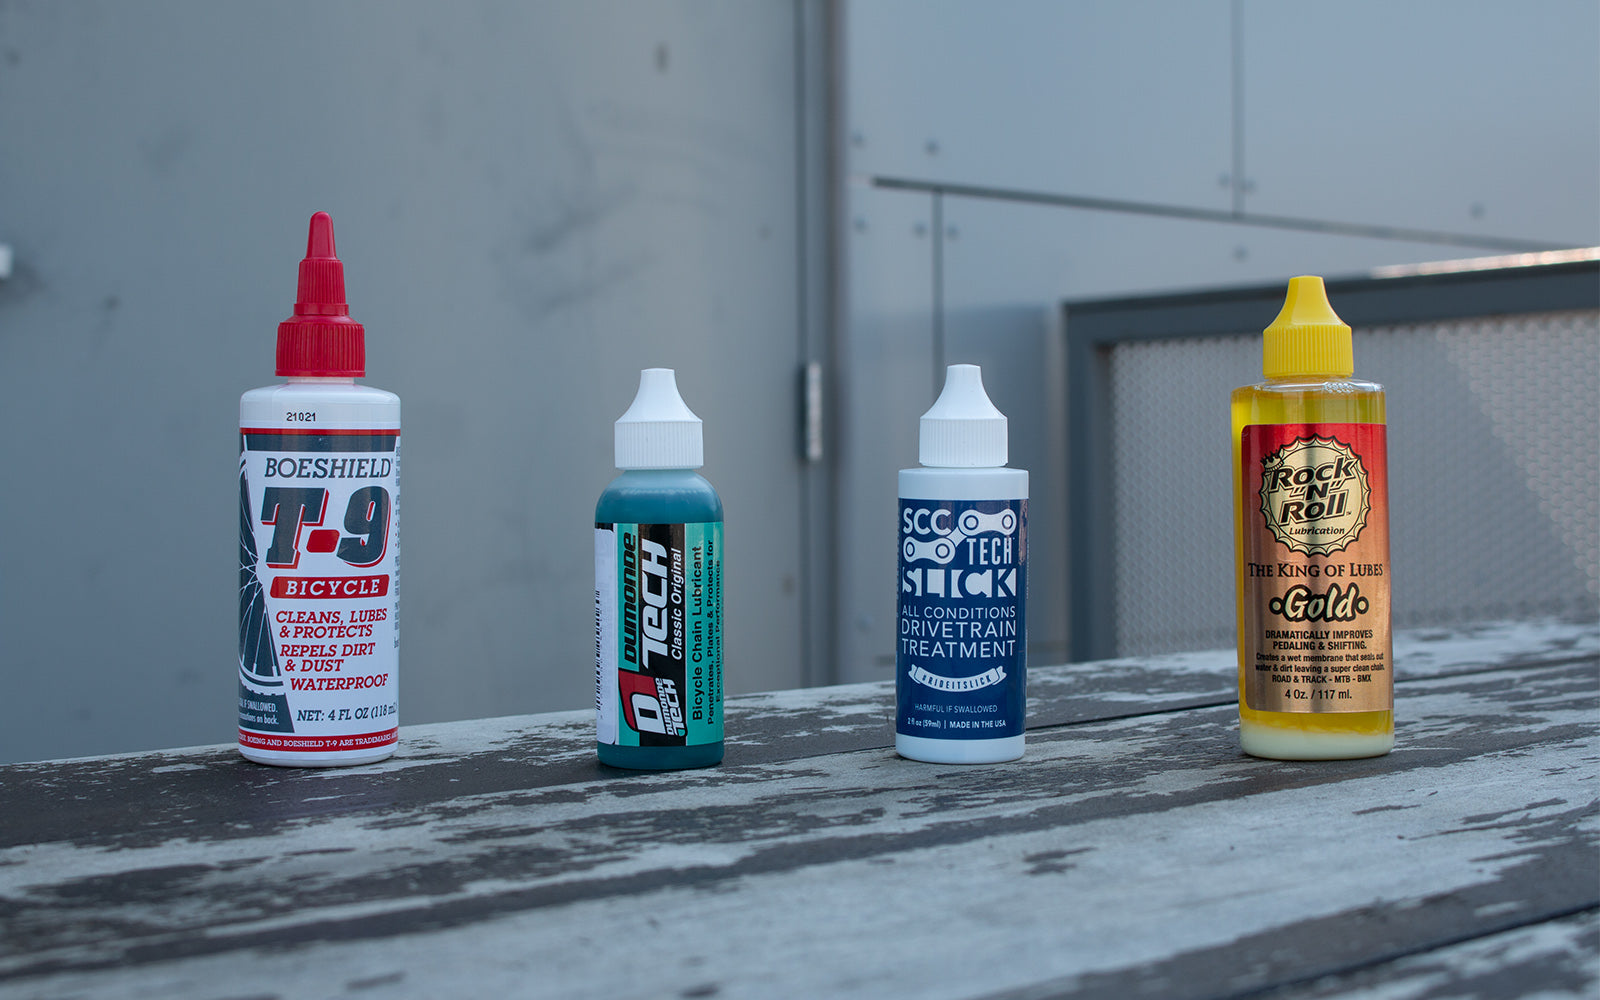 Five Way to Help Your Bike Feel Like New - Lubricate Your Pivots and Chain